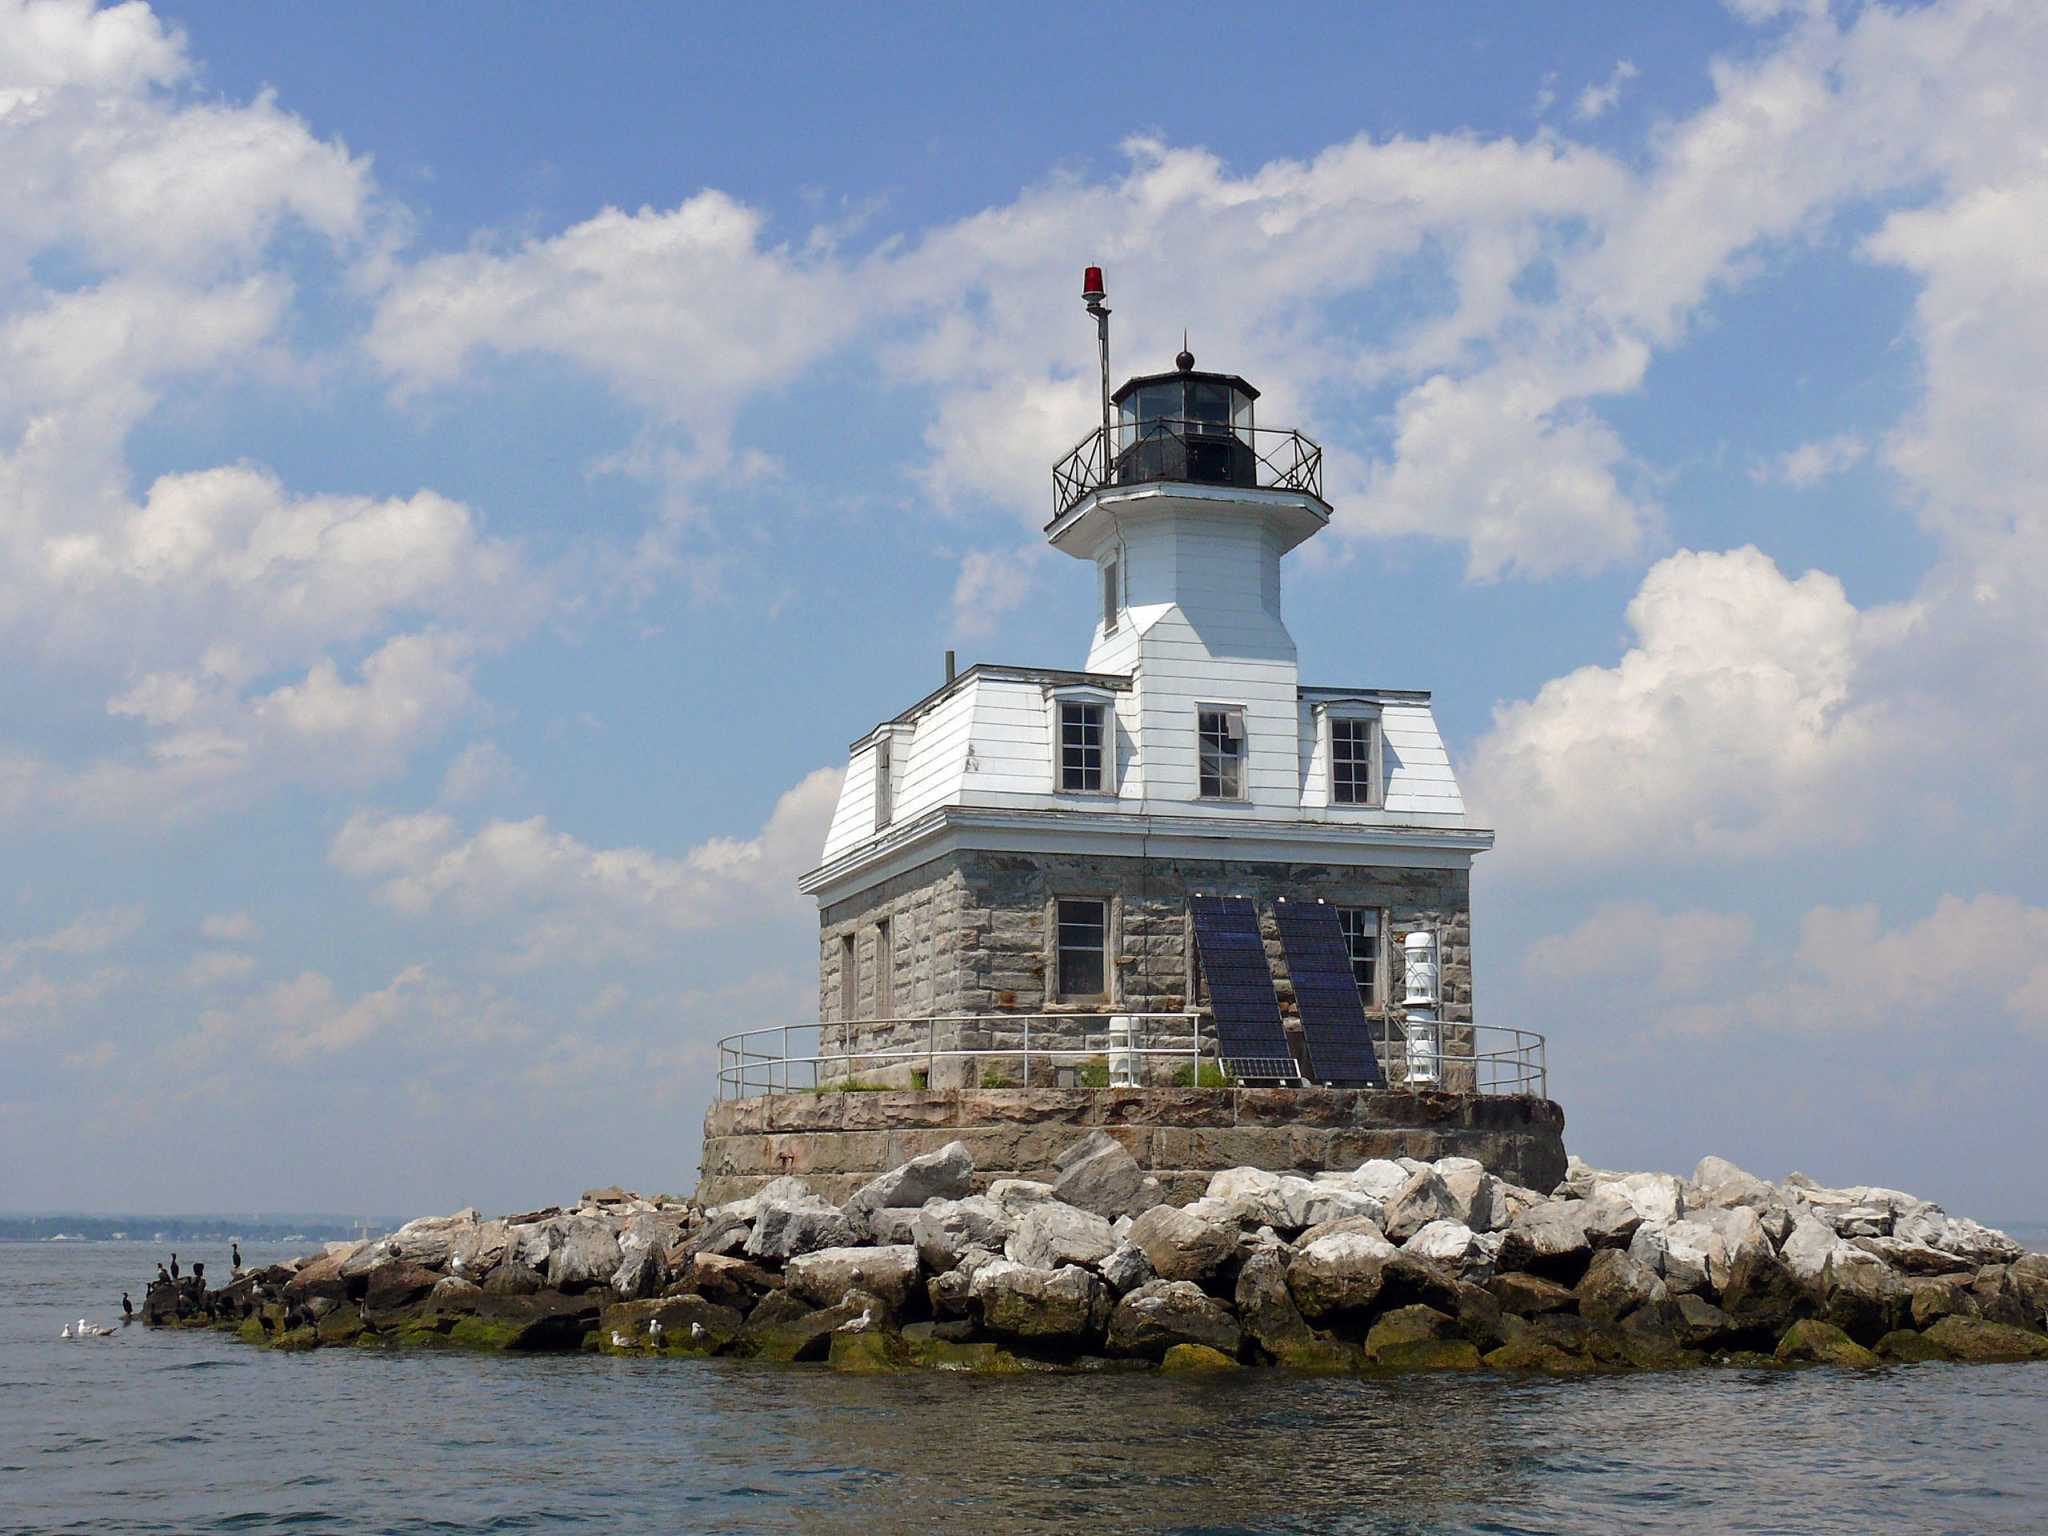 Three historic lighthouses up for grabs penfield included three historic lighthouses up for grabs penfield included connecticut post sciox Image collections